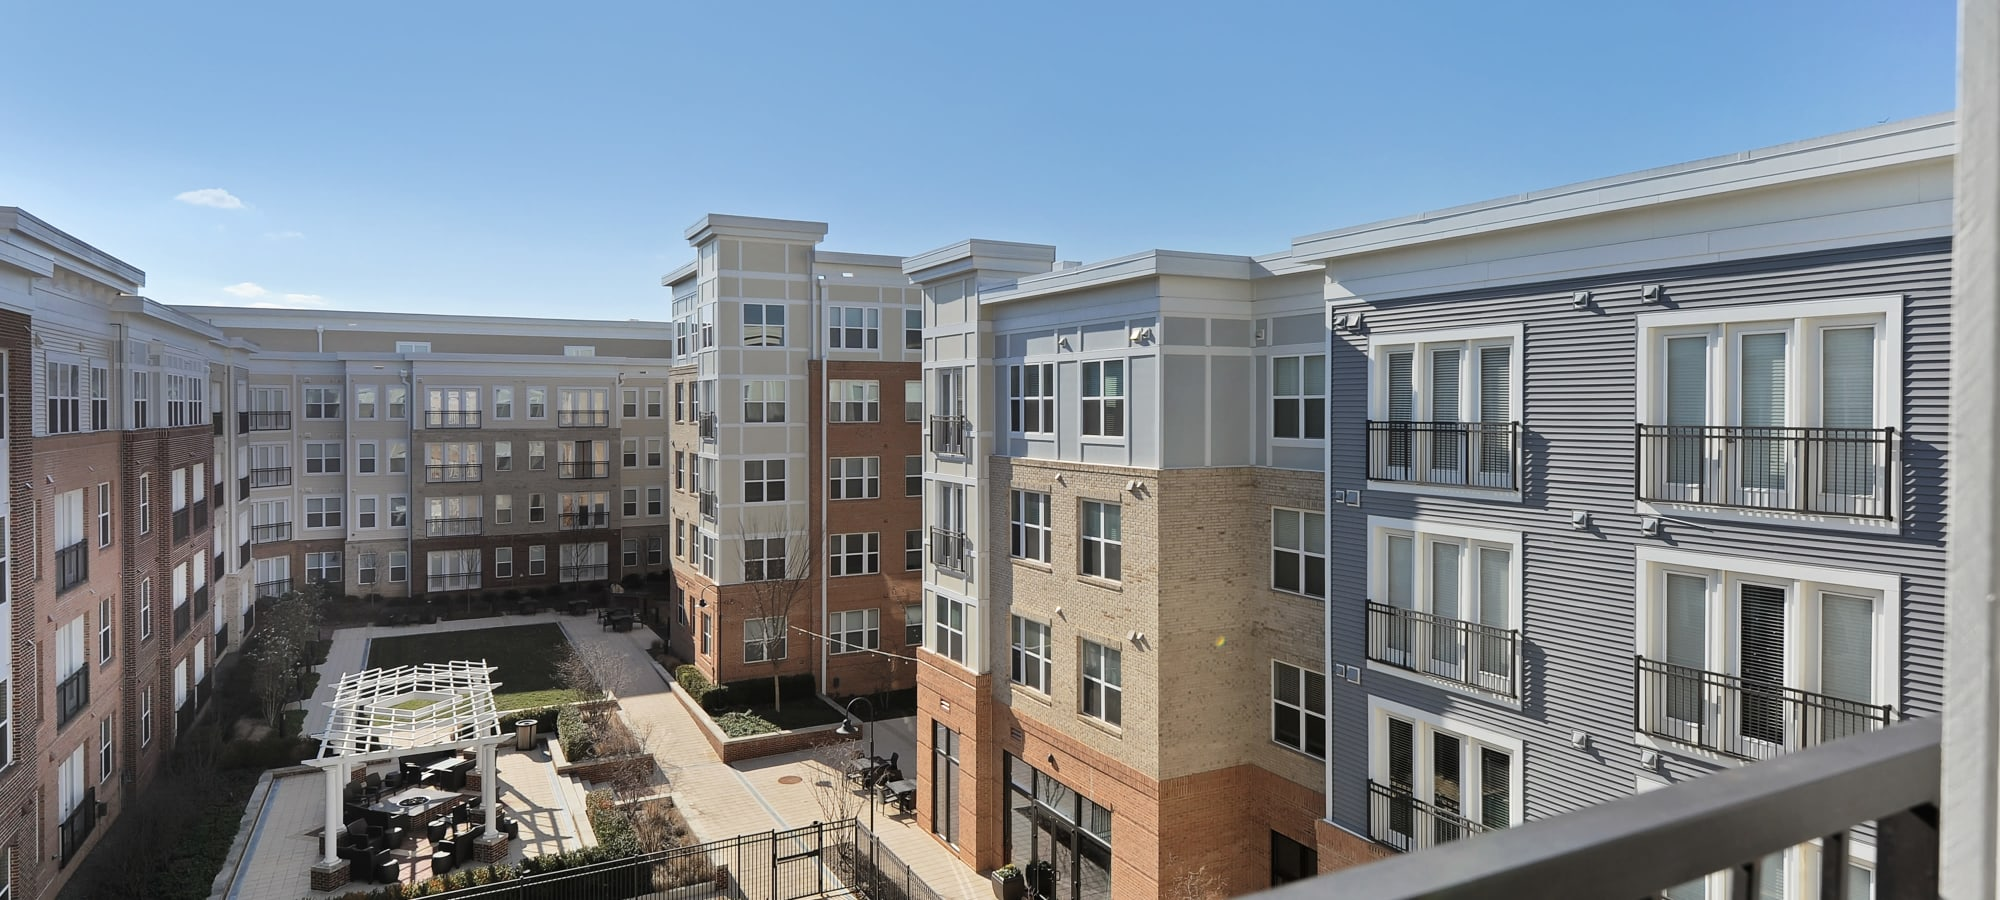 Exterior of The Mark at Brickyard Apartment Homes in Beltsville, Maryland.